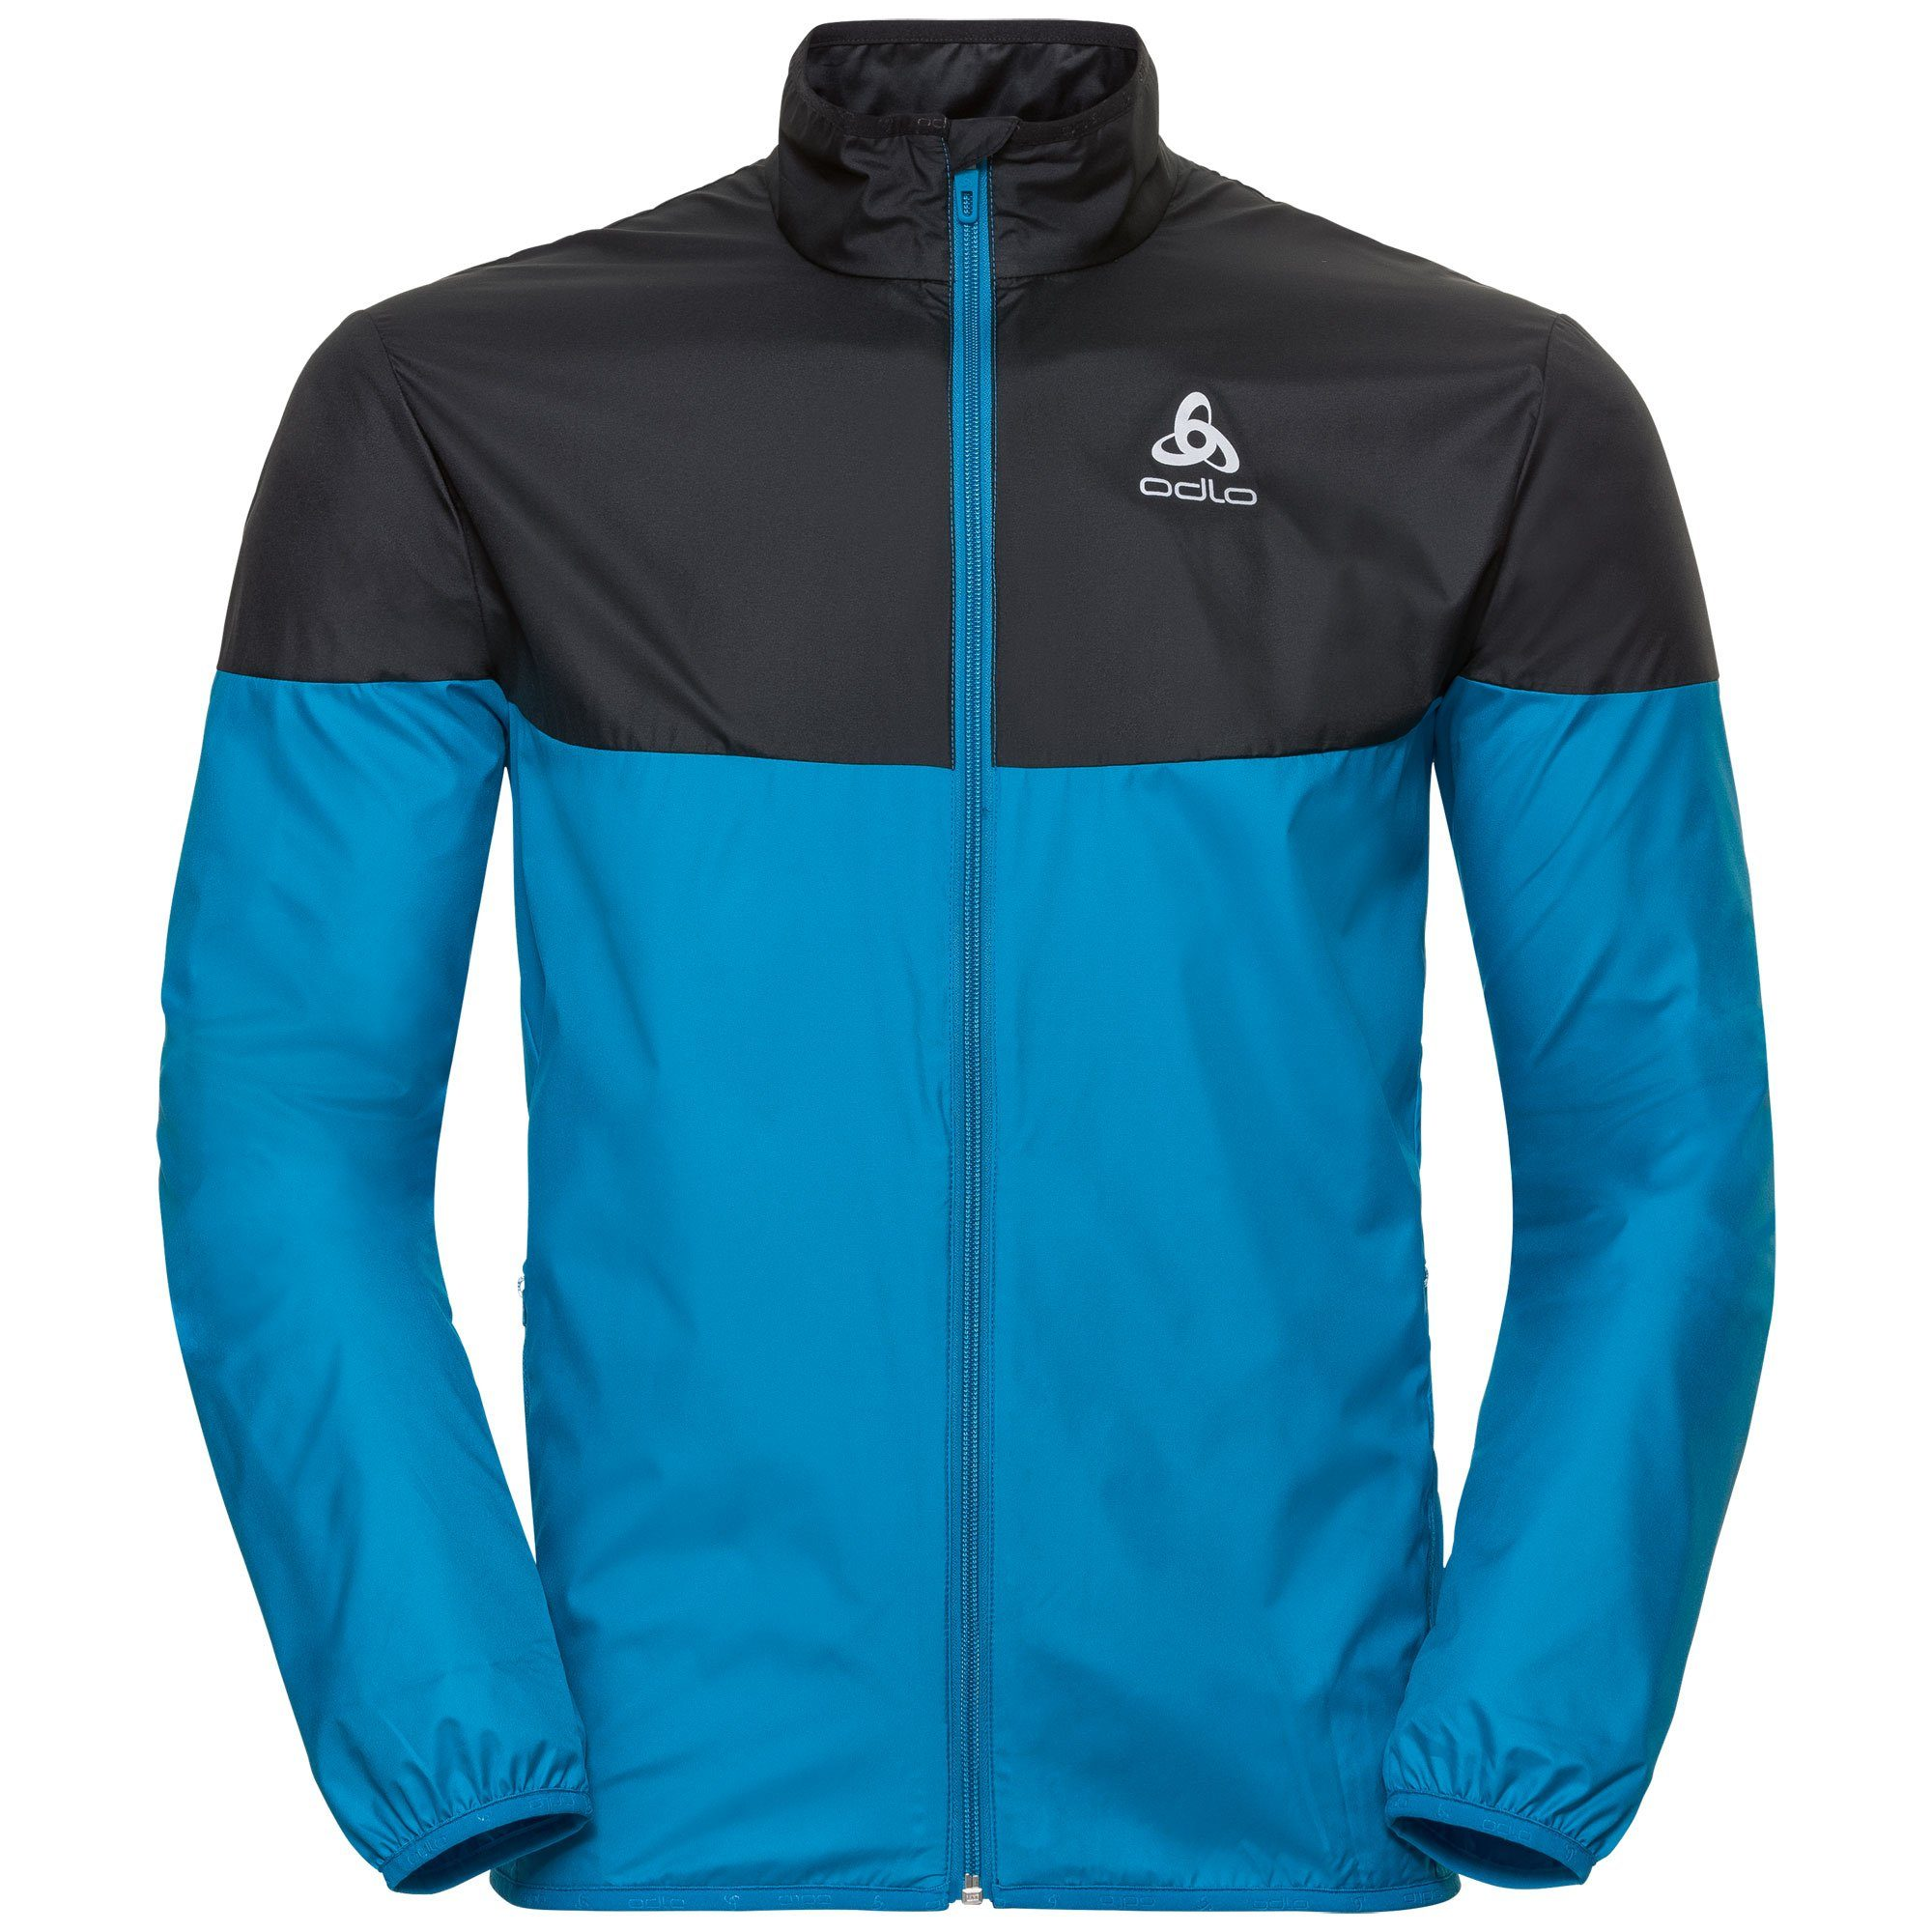 Odlo Outdoorjacke »312422-20476«